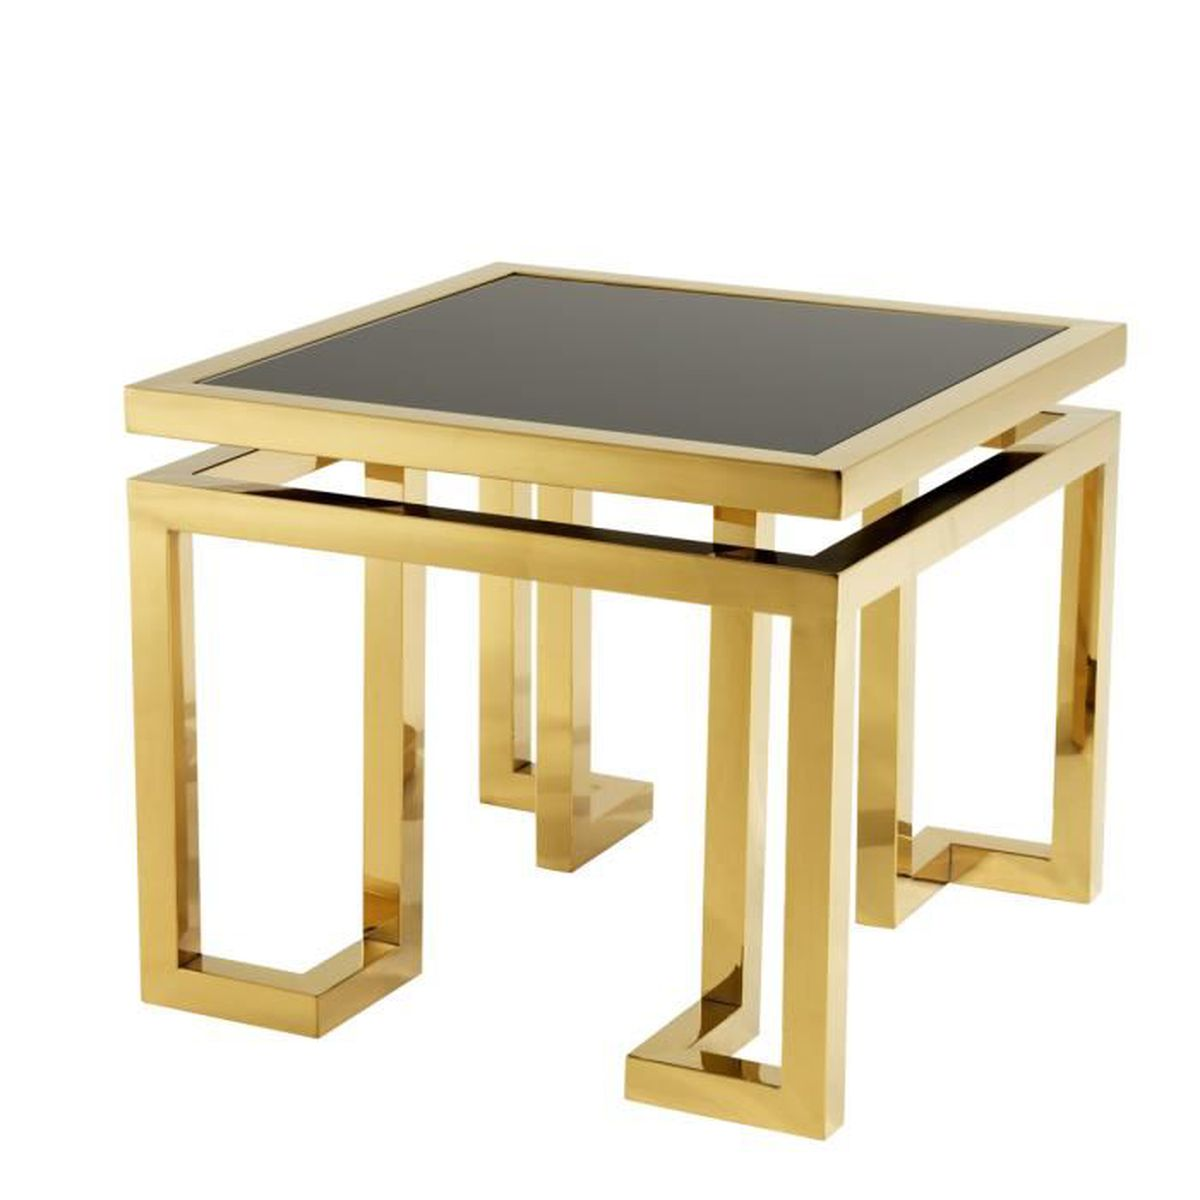 Lmmp table console palmer achat vente console extensible lmmp table c - Table extensible cdiscount ...